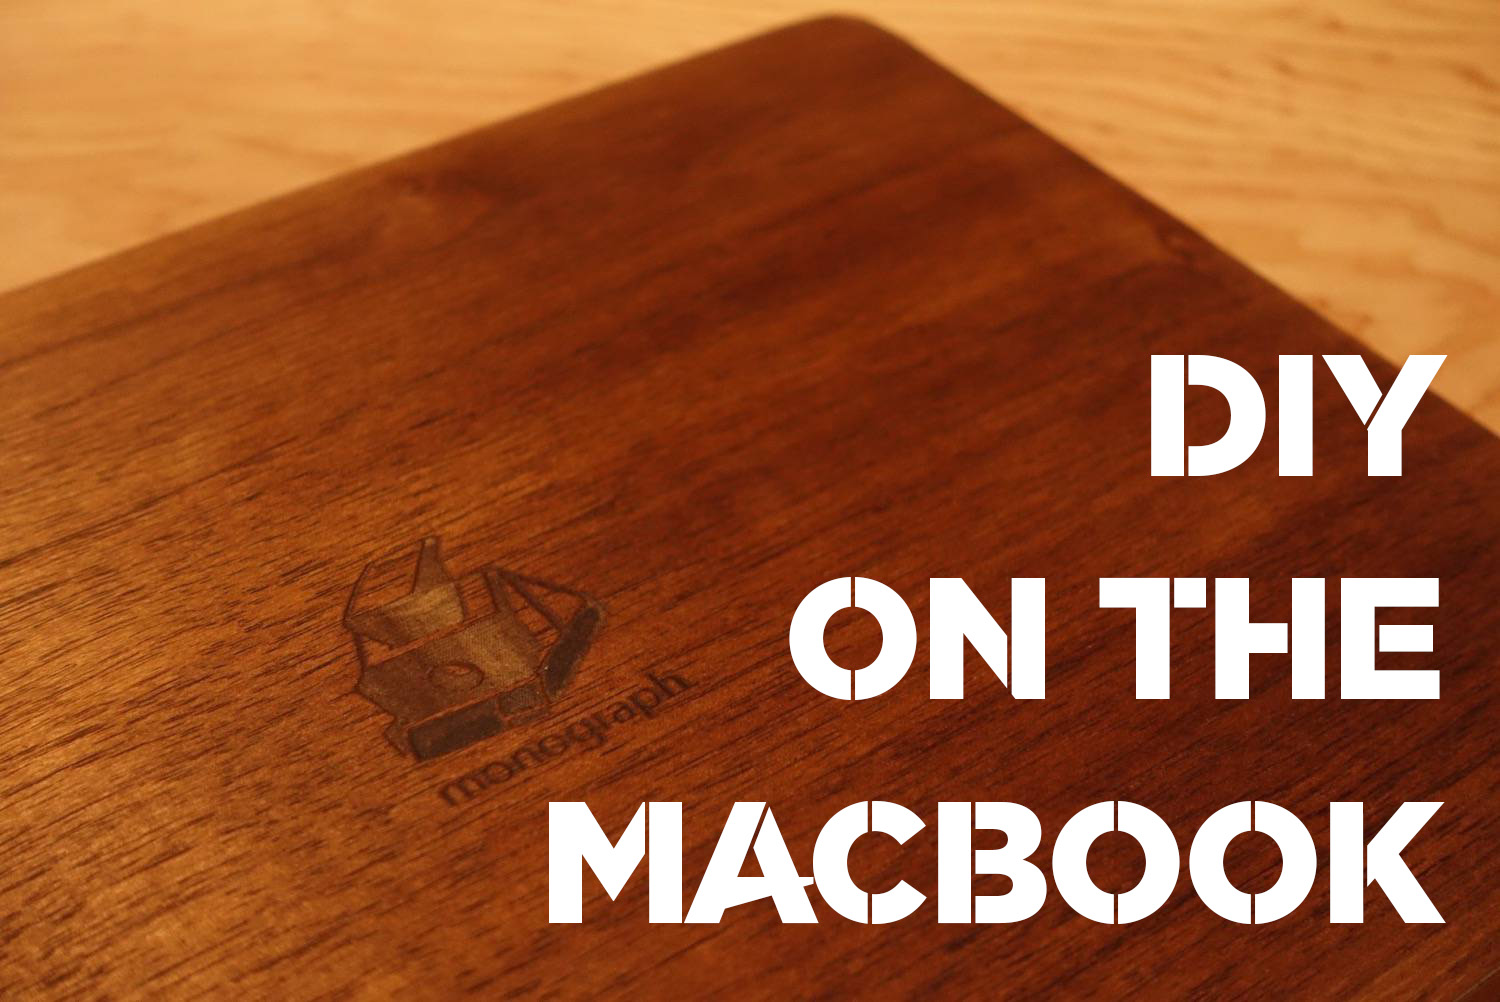 Macbook woodskintop